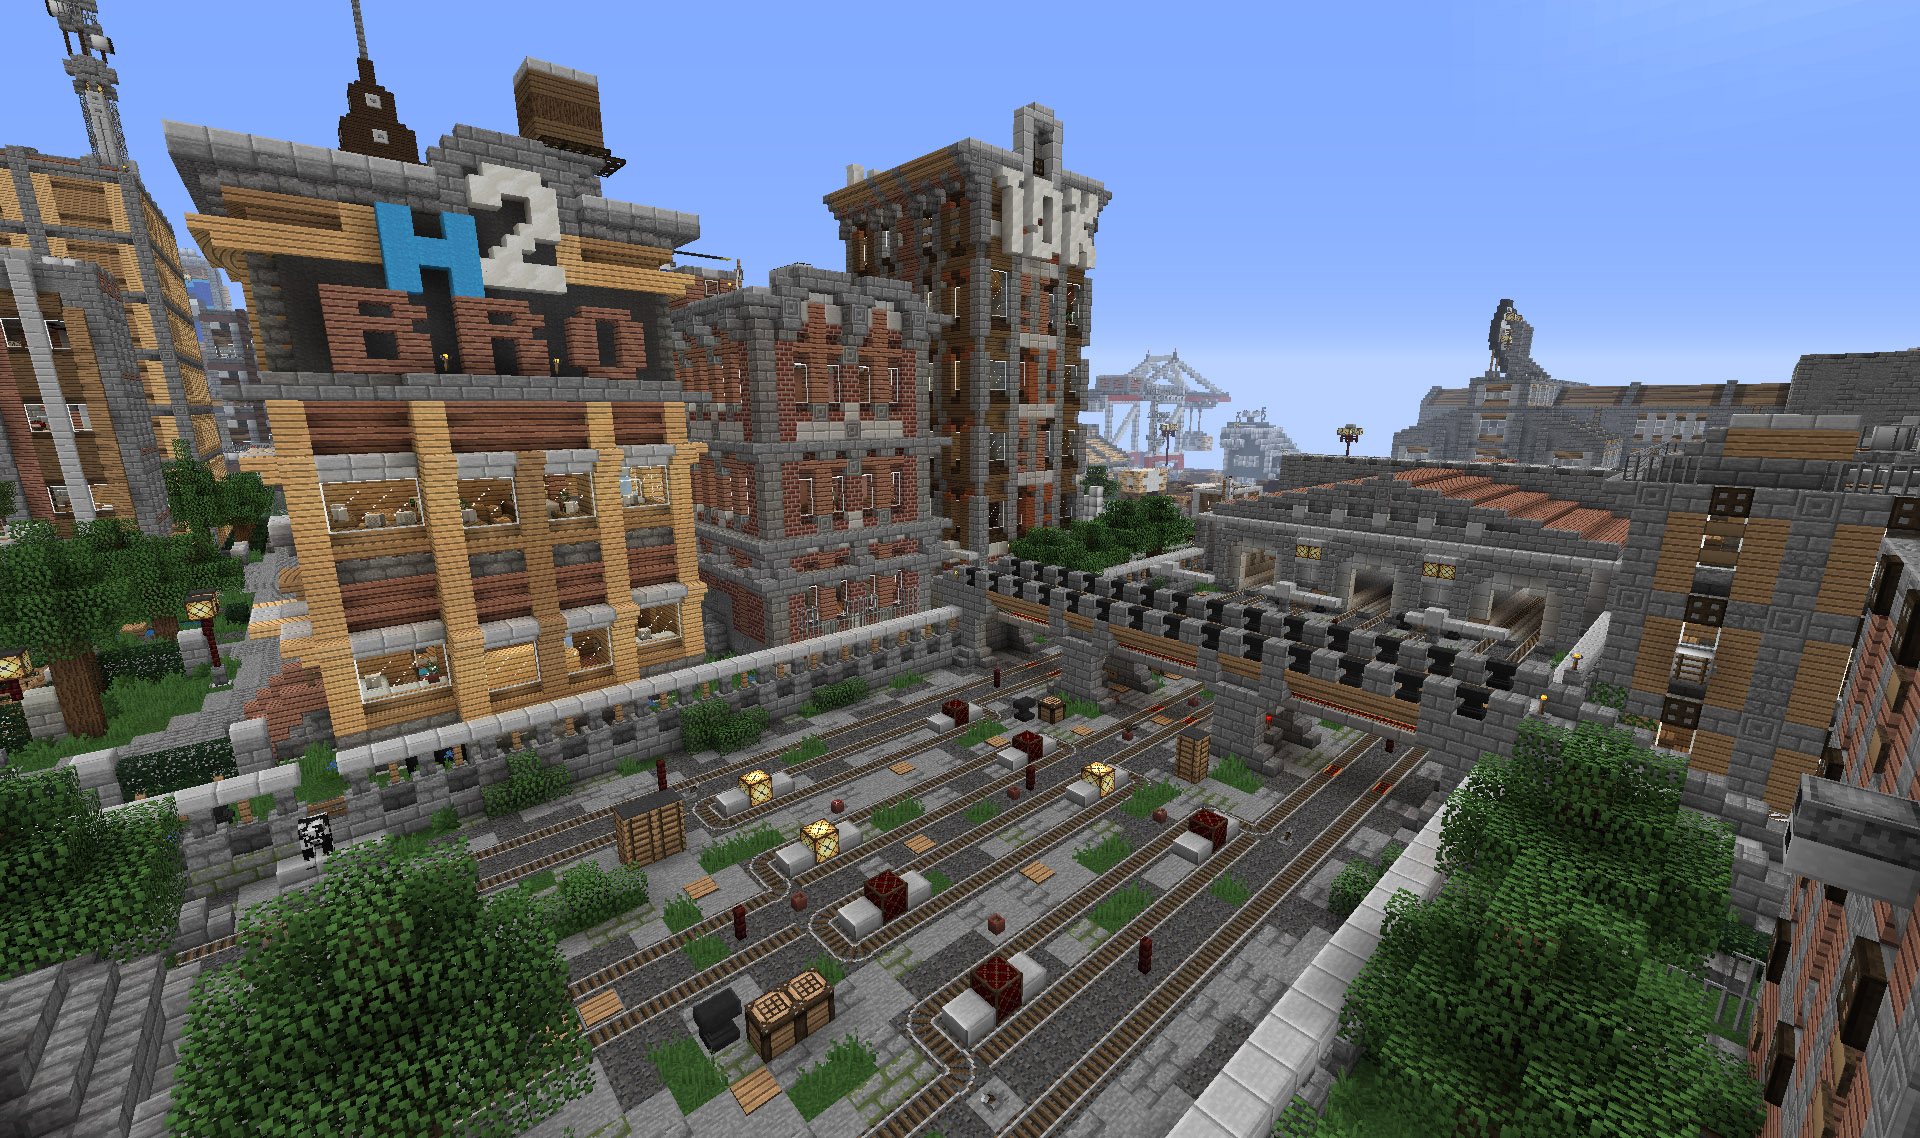 Download Broville v11 - A fully detailed Minecraft sandbox city map